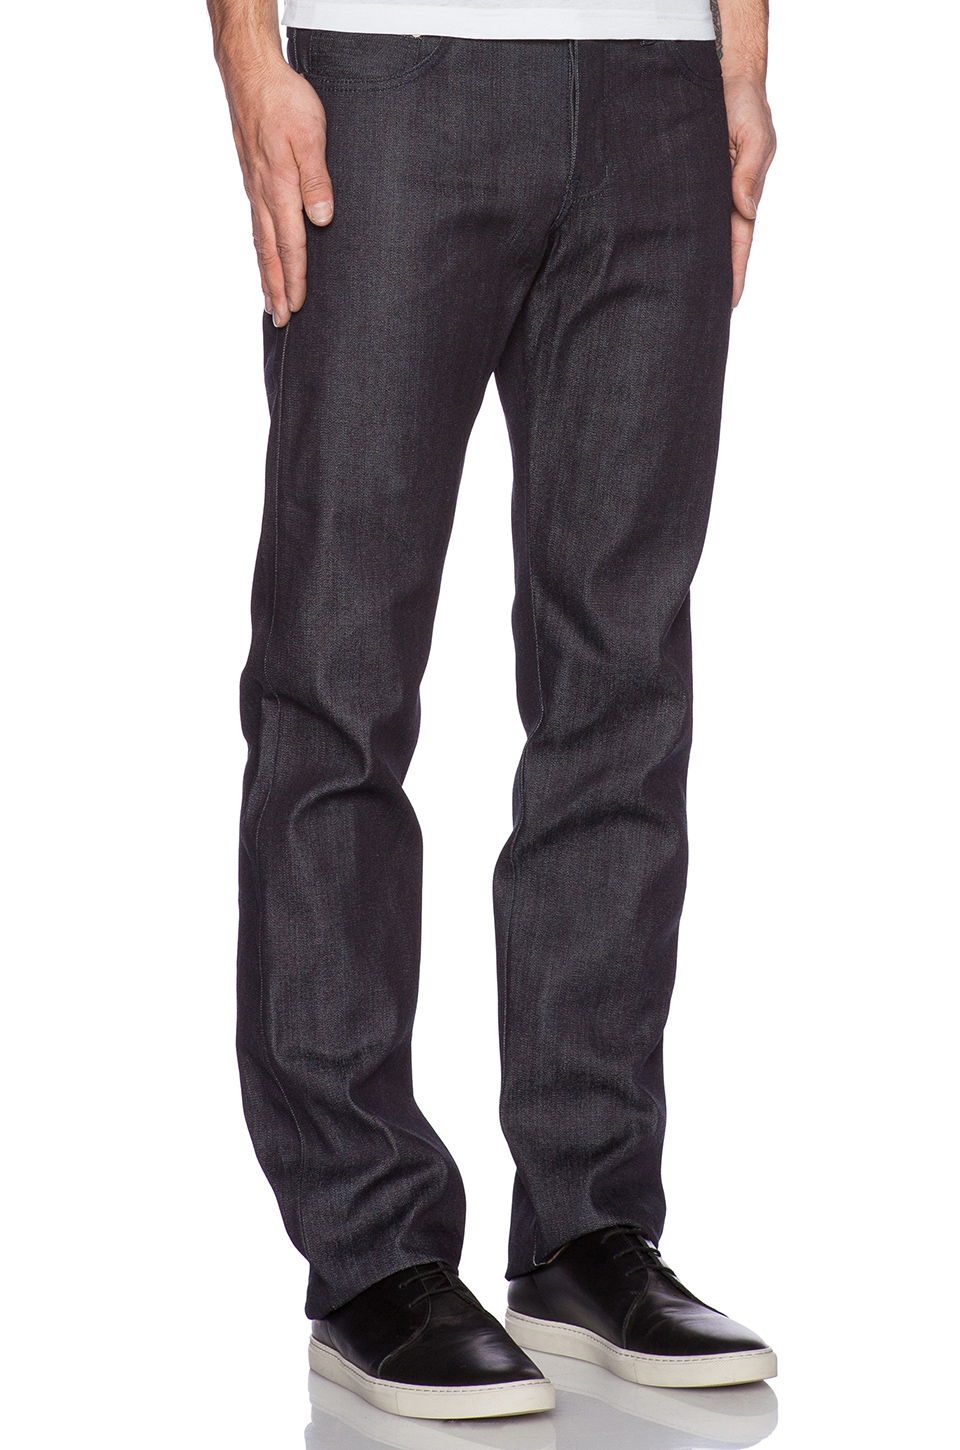 Naked & Famous Denim Naked & Famous Slim Guy in 13oz Broken Twill Selvedge